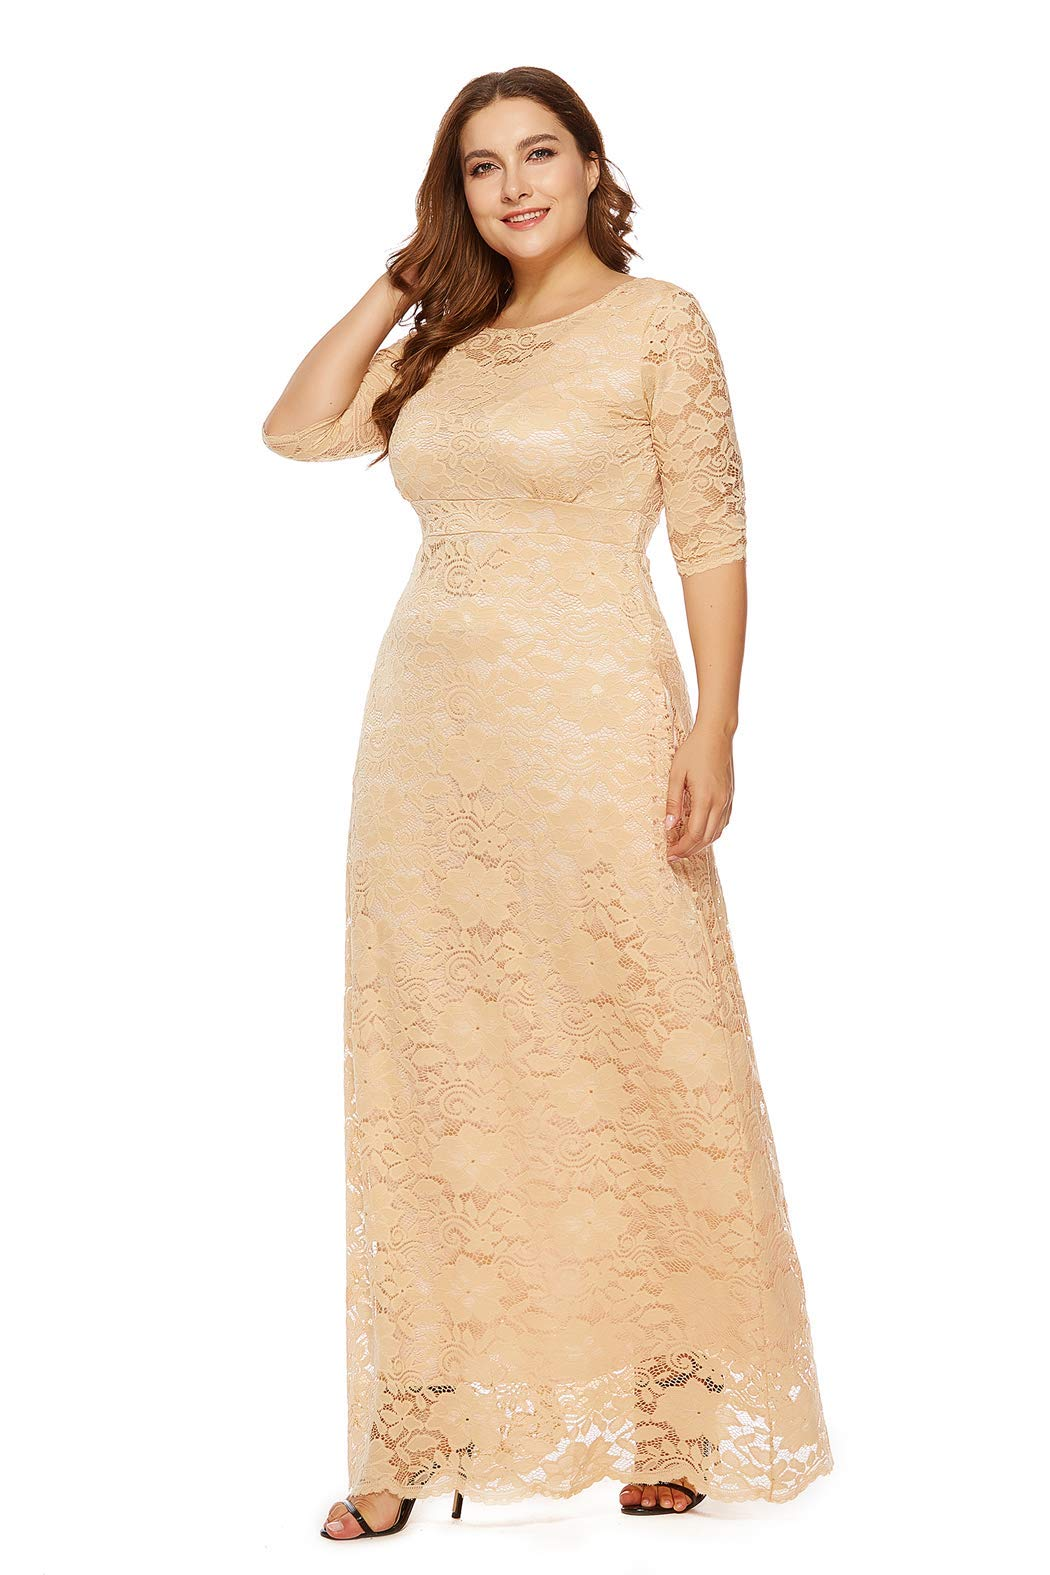 5f8decde34 Womens Floral Lace 2/3 Sleeves Maxi Dress Plus Size Evening Party Dress  Apricot